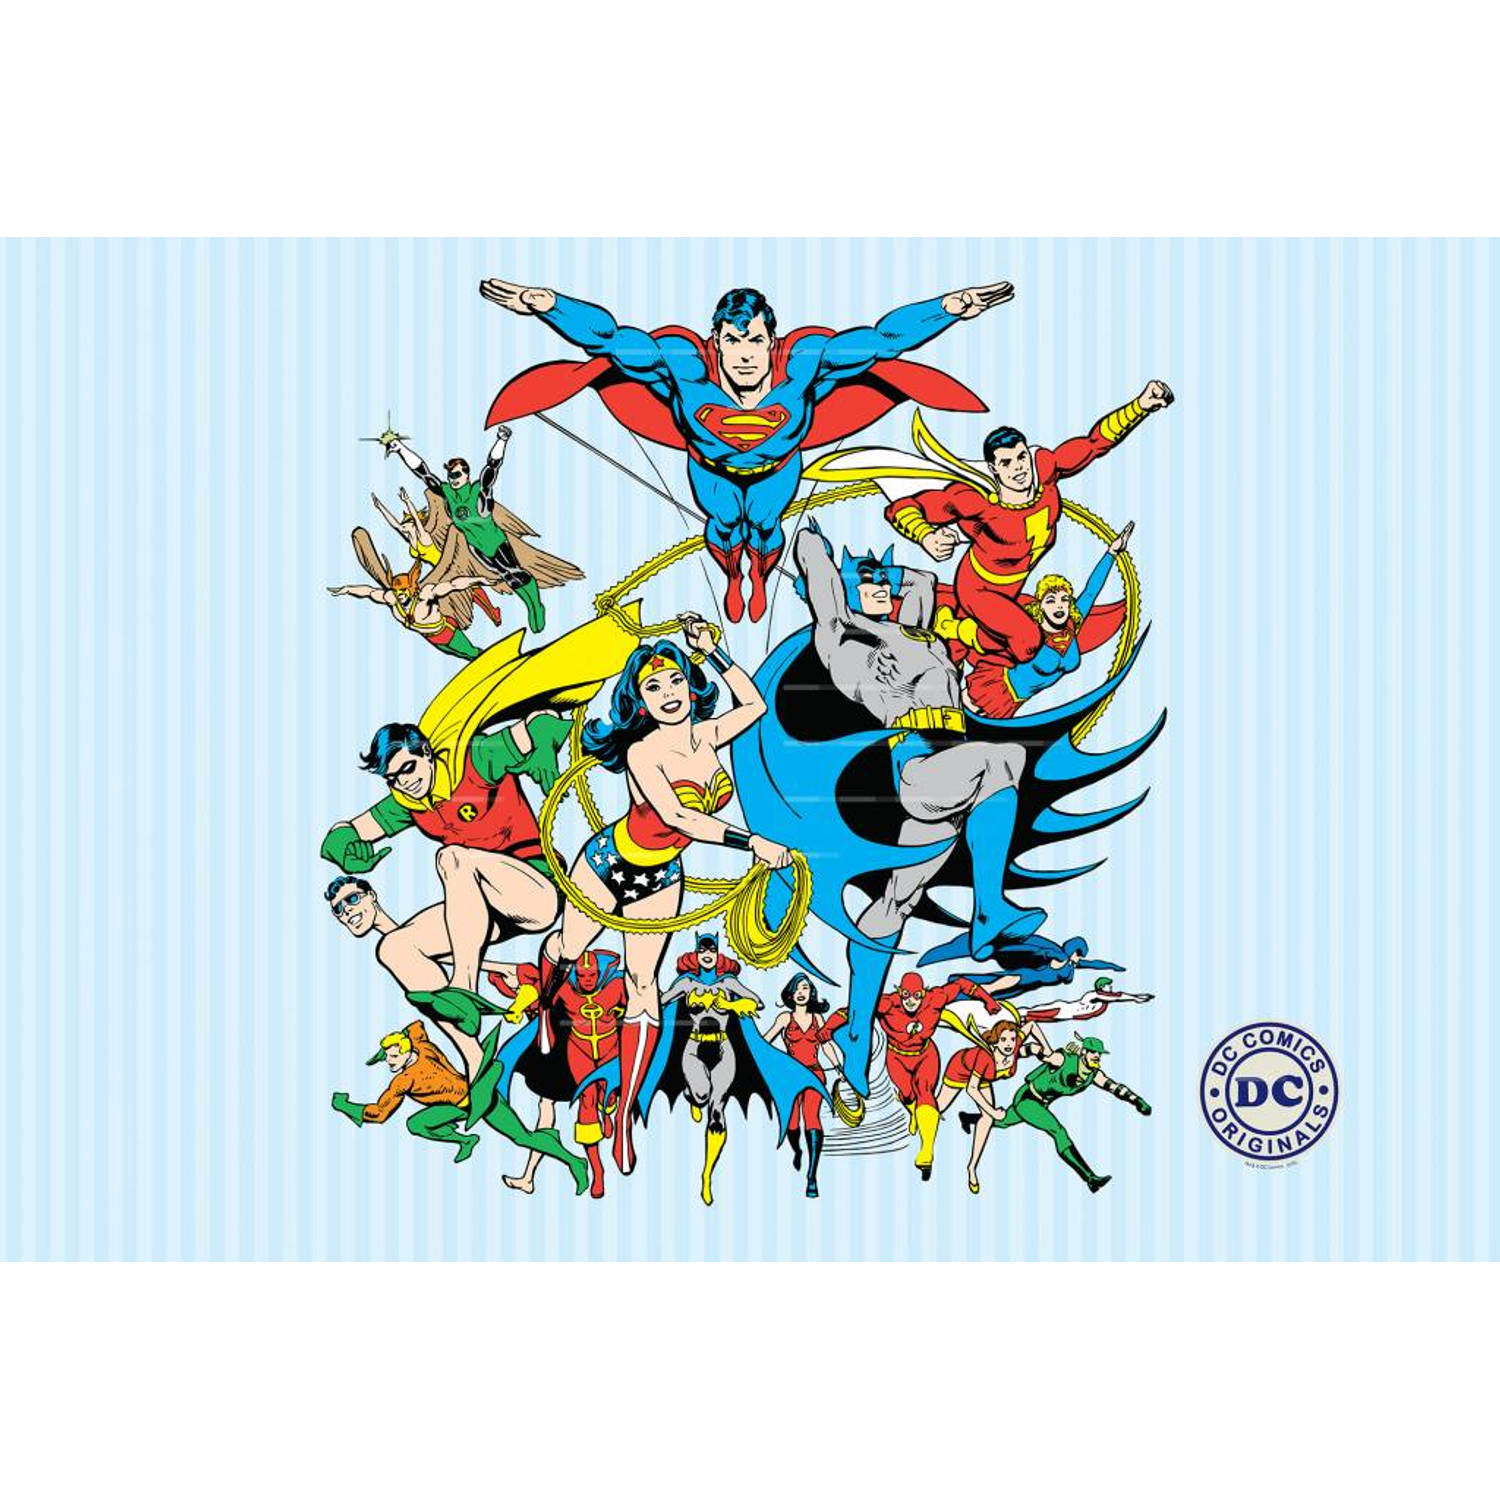 DC Comics Collage - Fotobehang - 232 x 158 cm - Multi